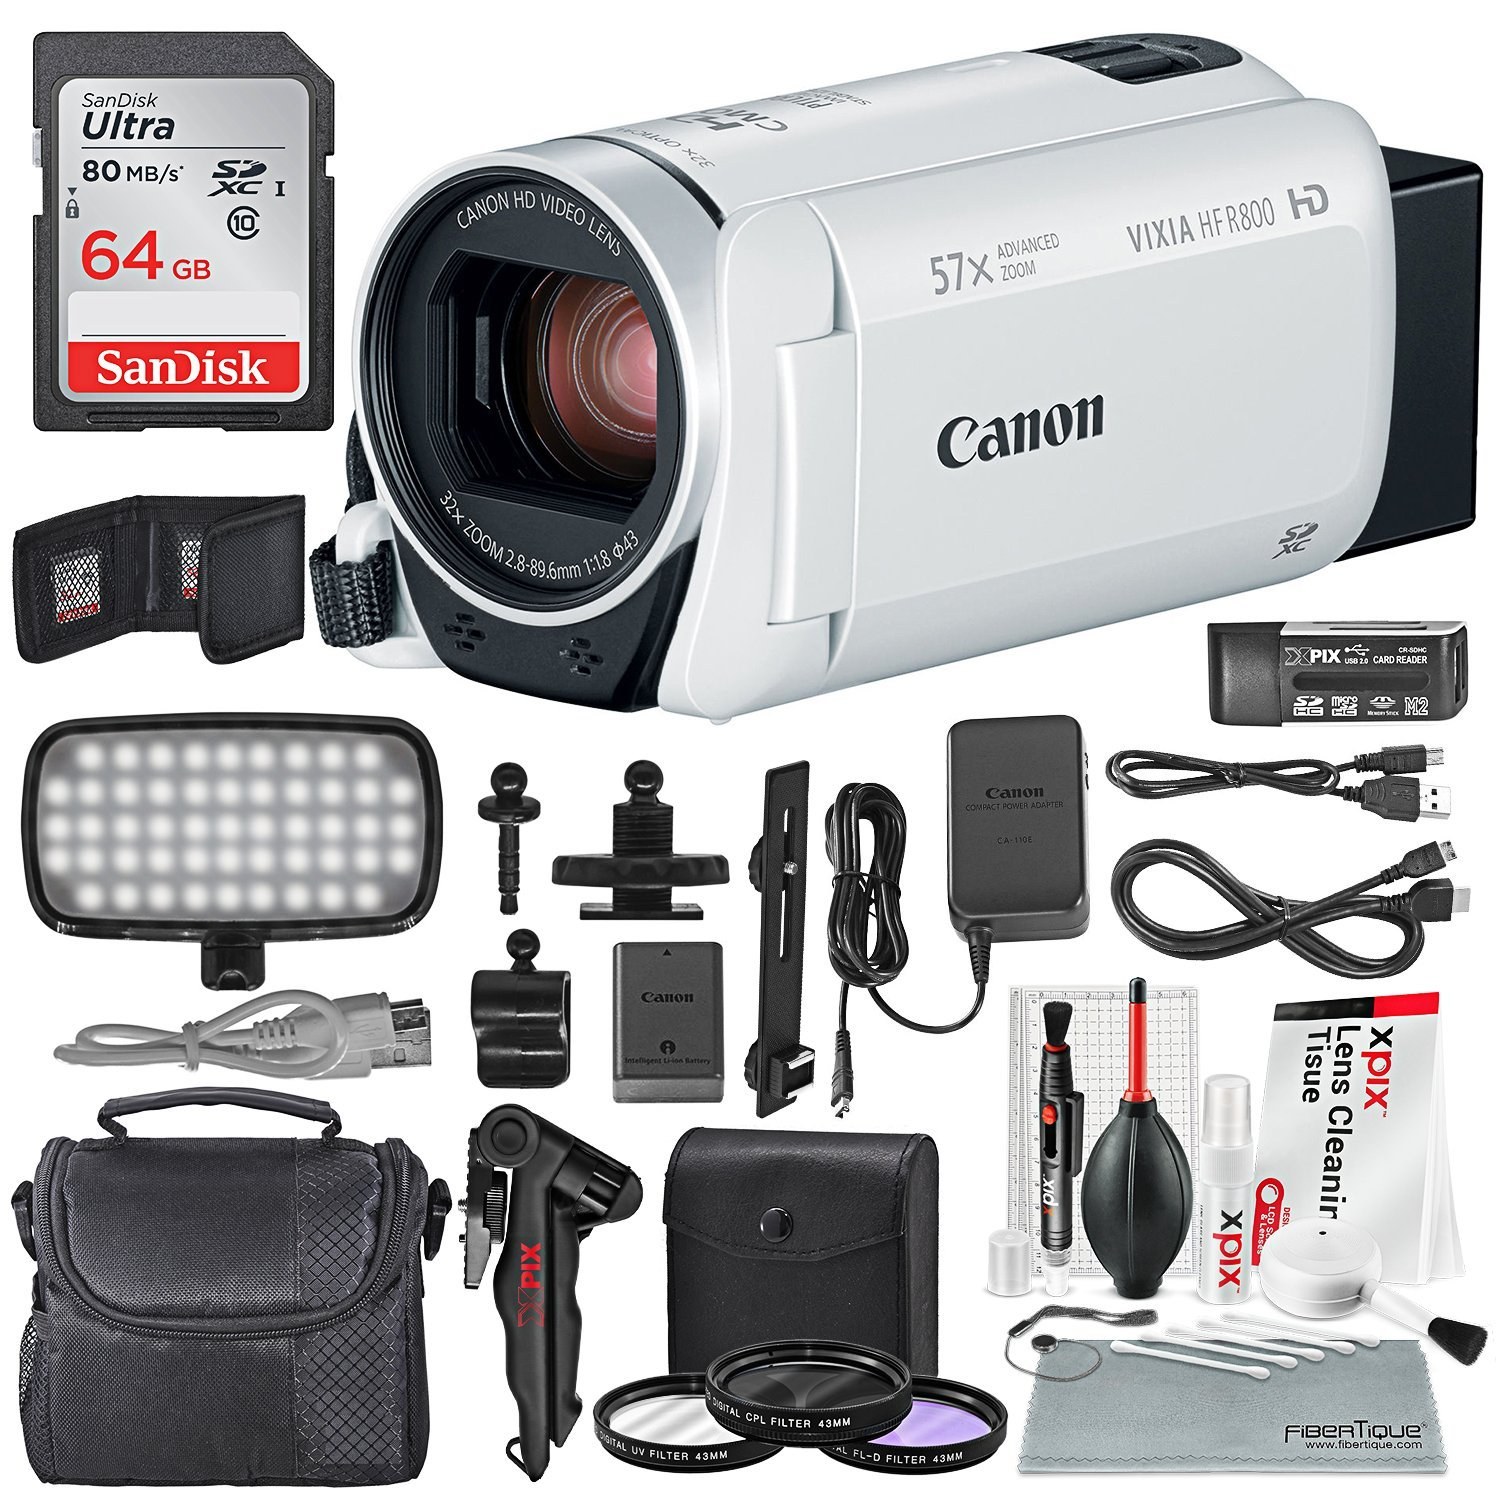 Canon Vixia HF R800 HD Camcorder (White) Deluxe Bundle W/ Camcorder Case, 64 GB SD Card, 3 Pc. Filter Kit, LED Light Kit, and Xpix Cleaning Accessories by Photo Savings